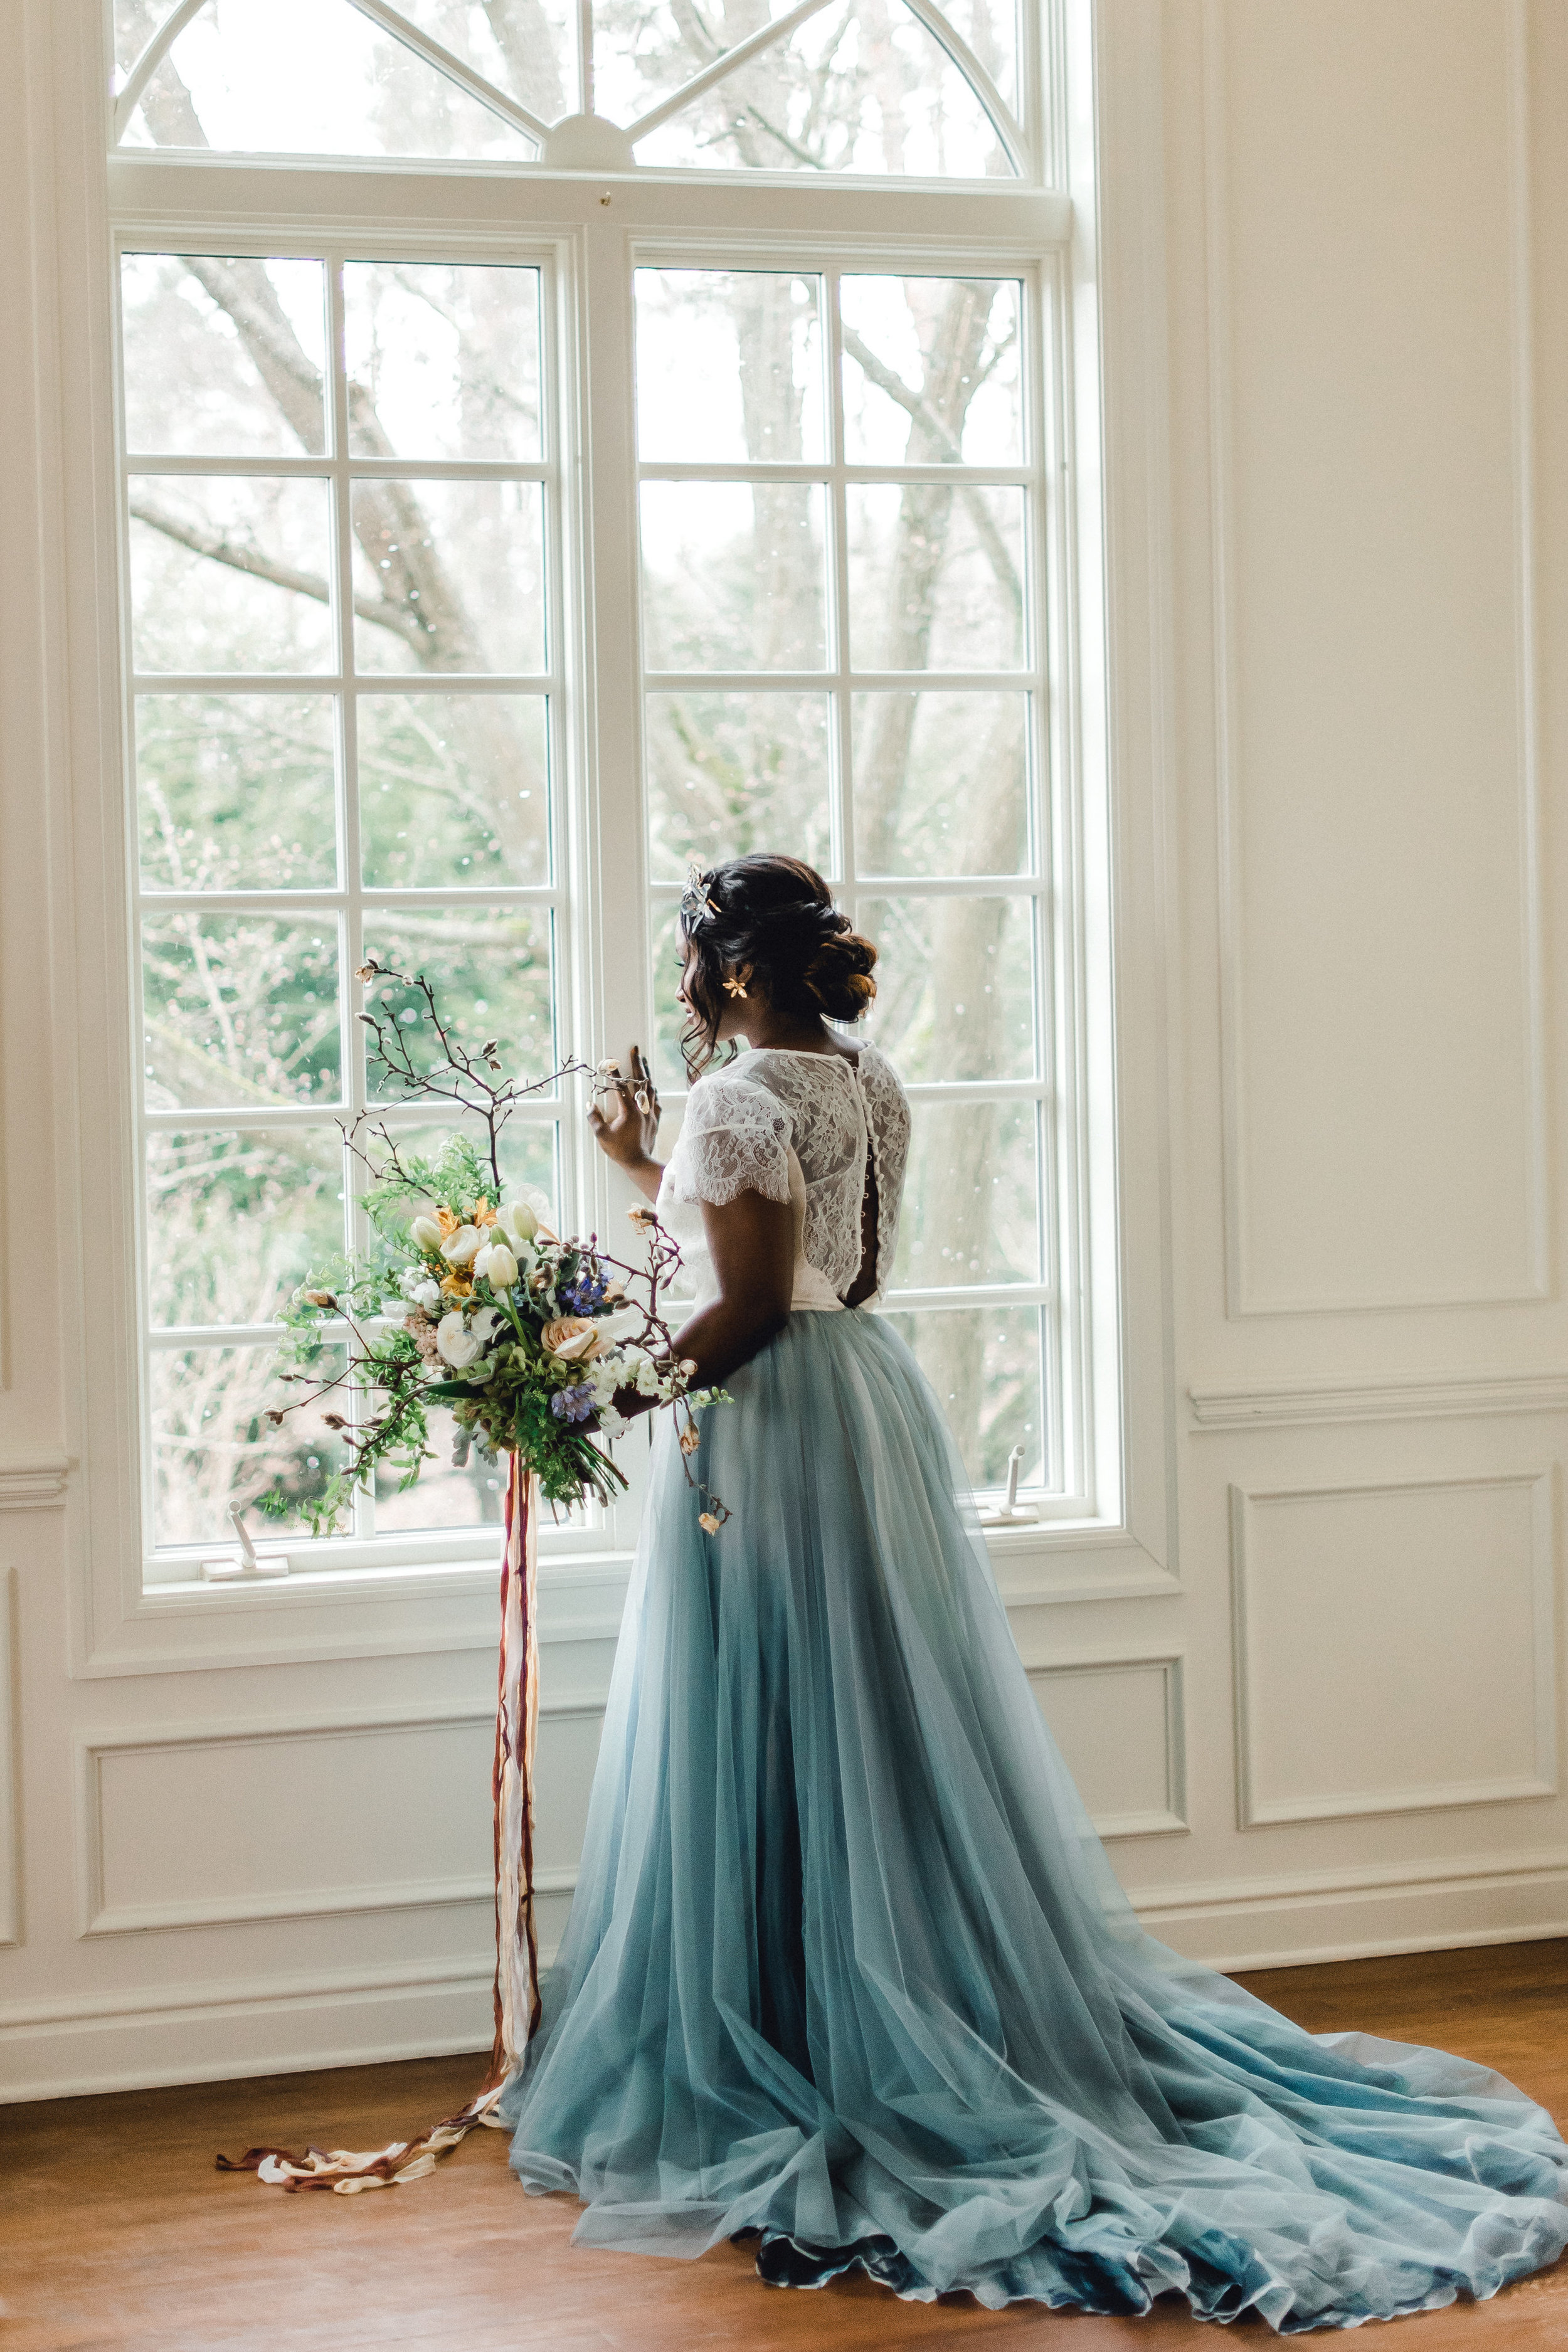 Winter Wedding - Elegant Blue Theme | Exhale Events | The Johnston House, Pittsburgh PA